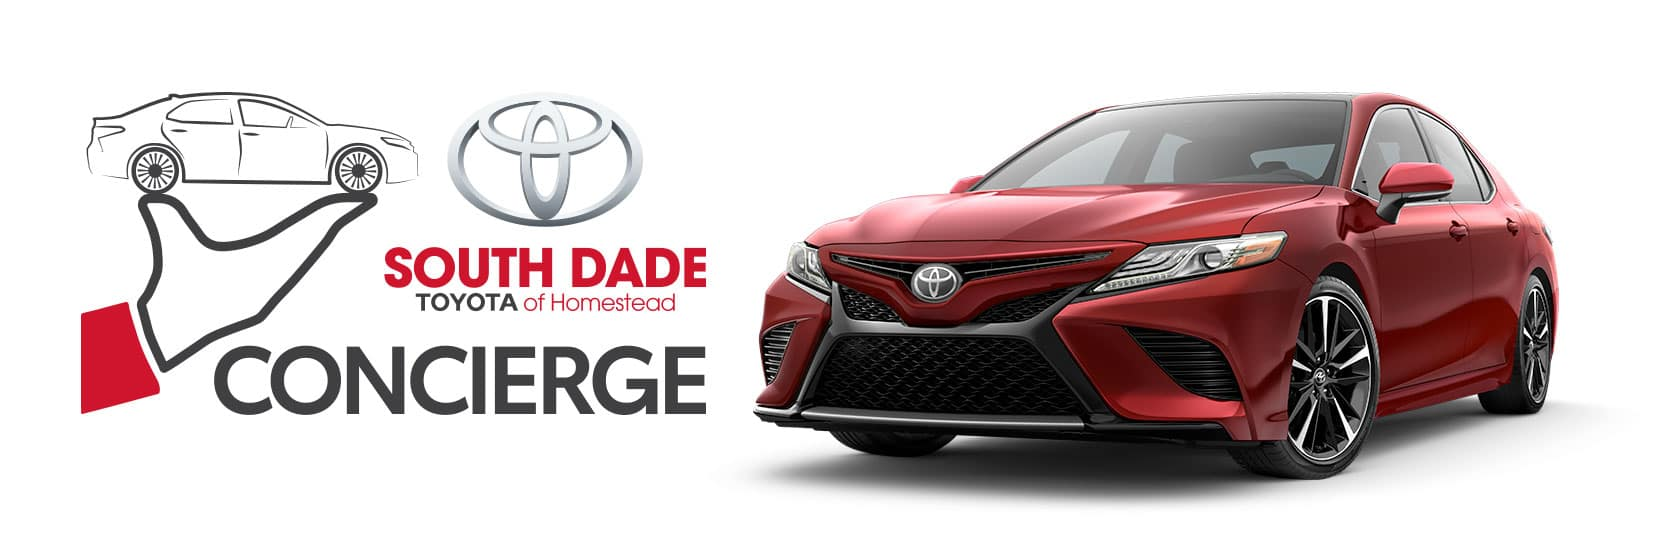 Toyota Concierge Banner Image